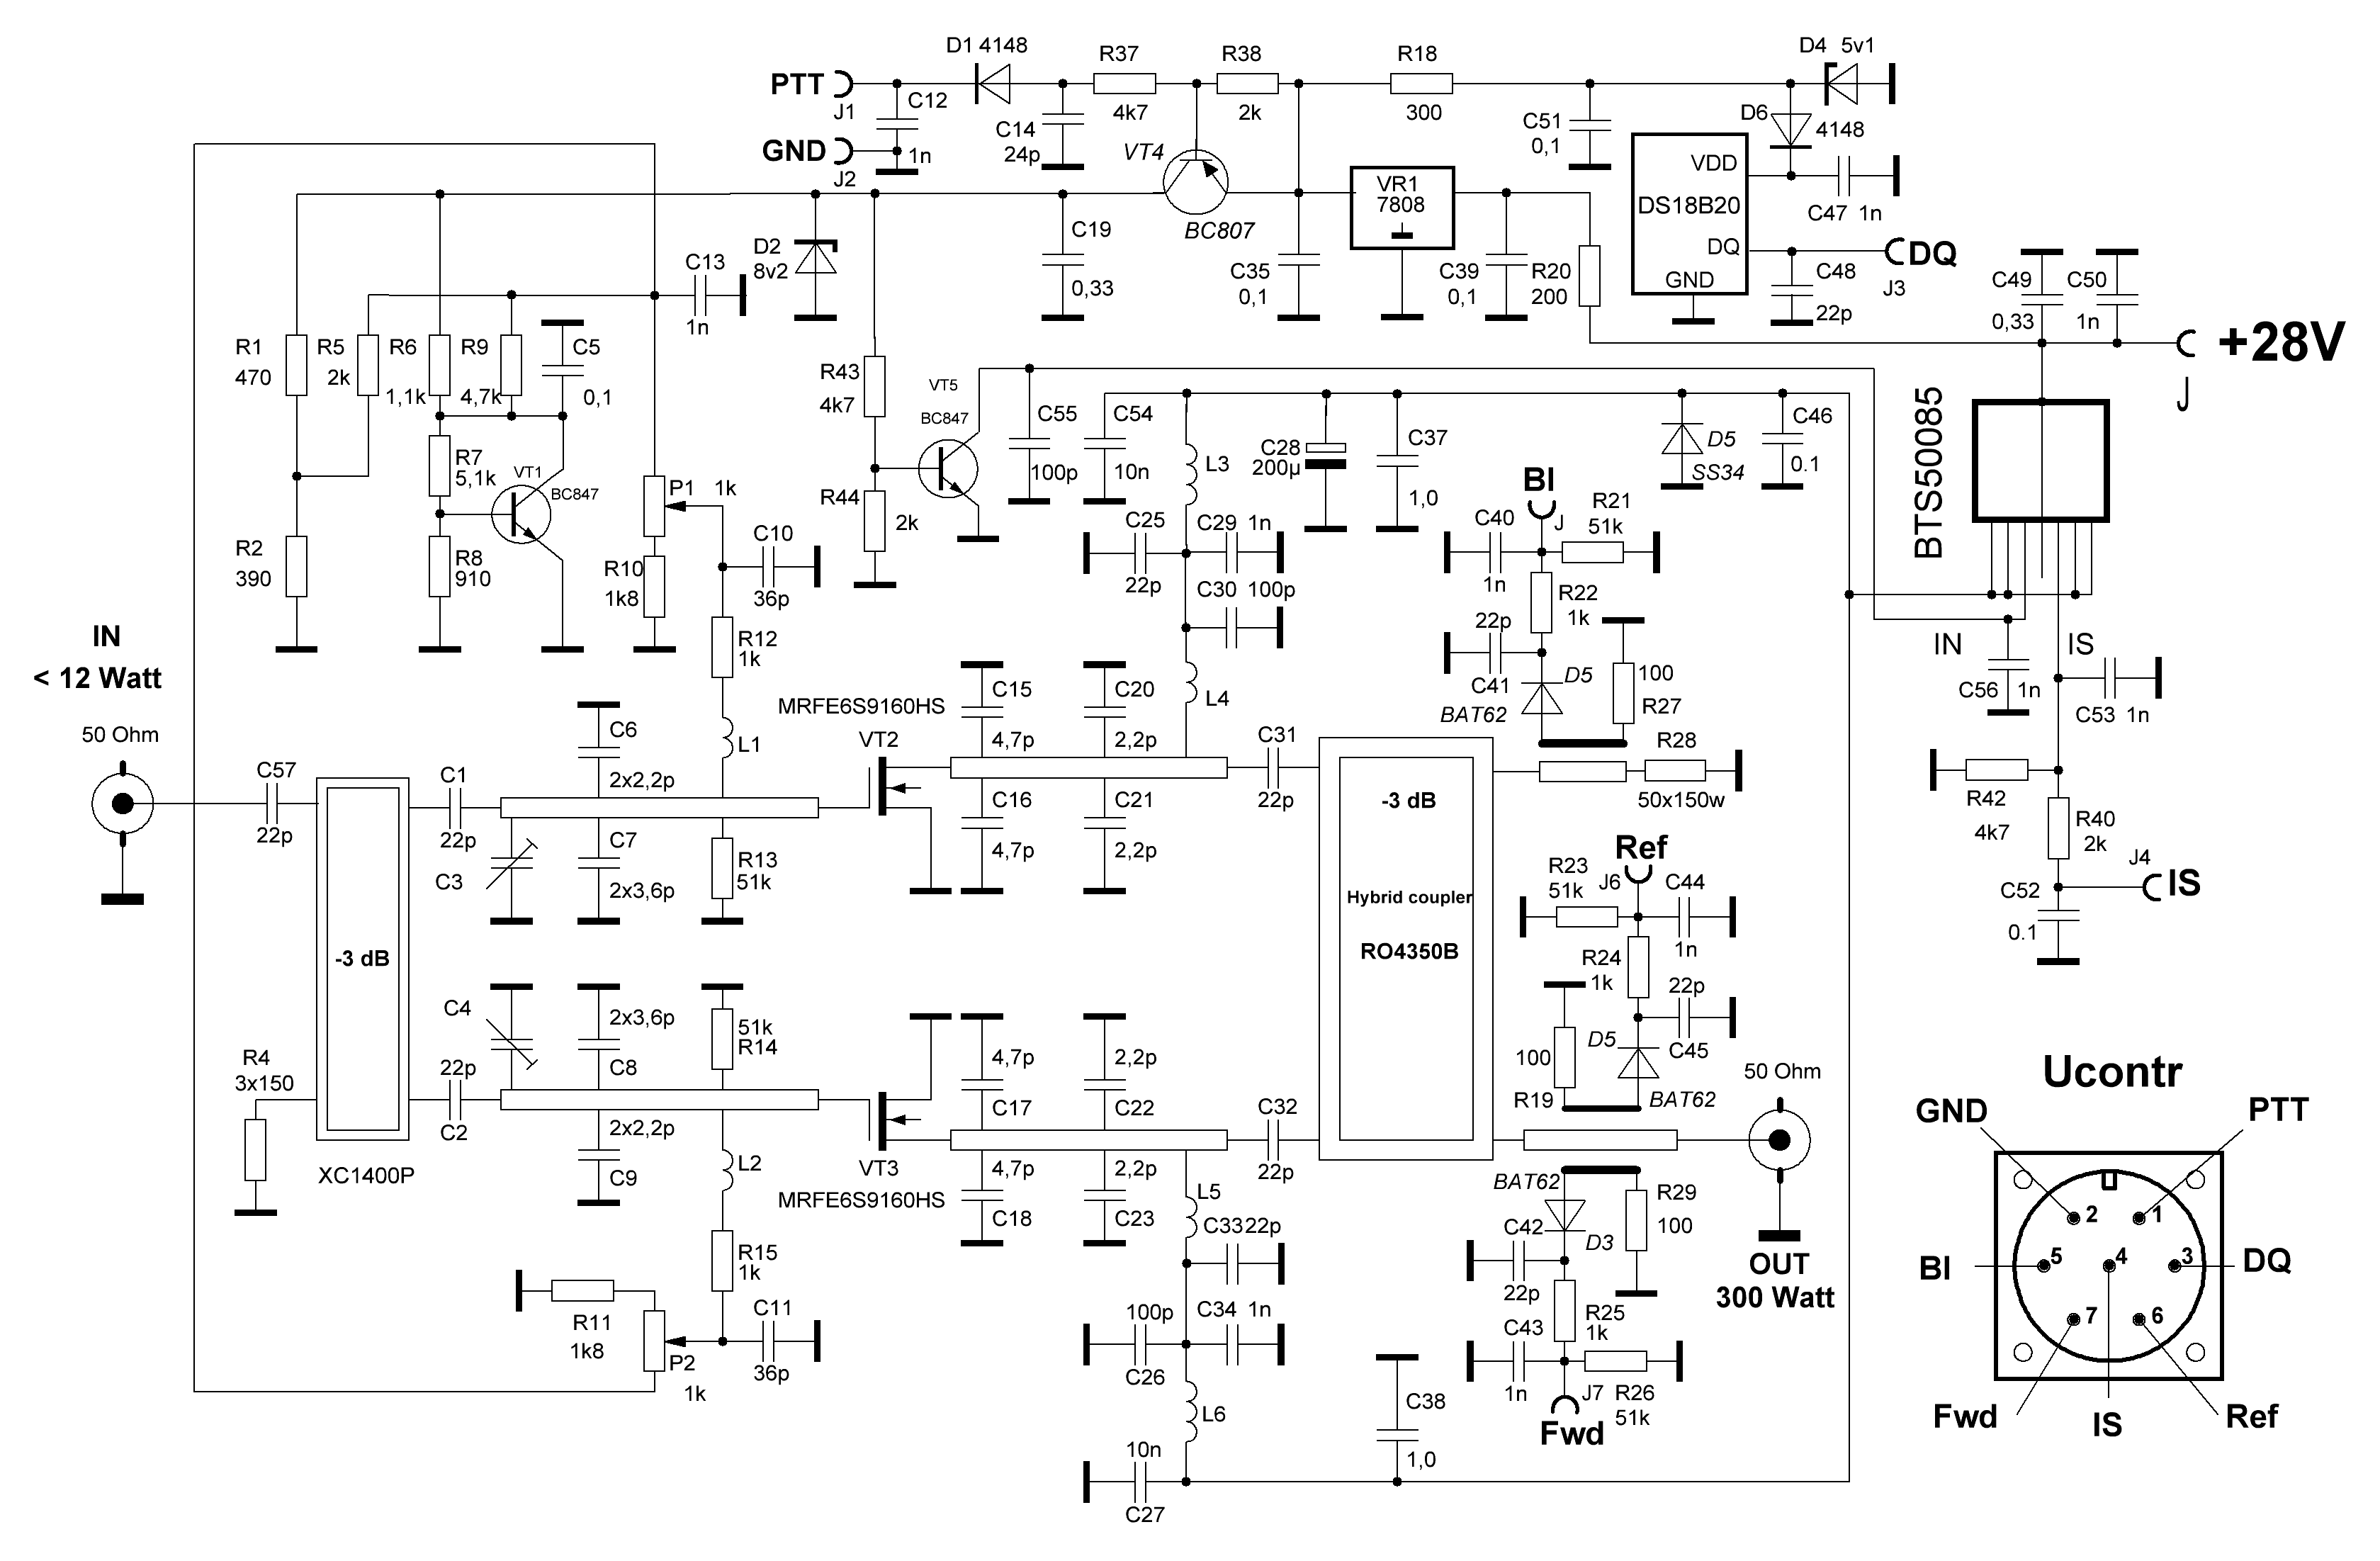 PA-23cm-12W-IN-300W-OUT-pallet schematics from 2020-05-18